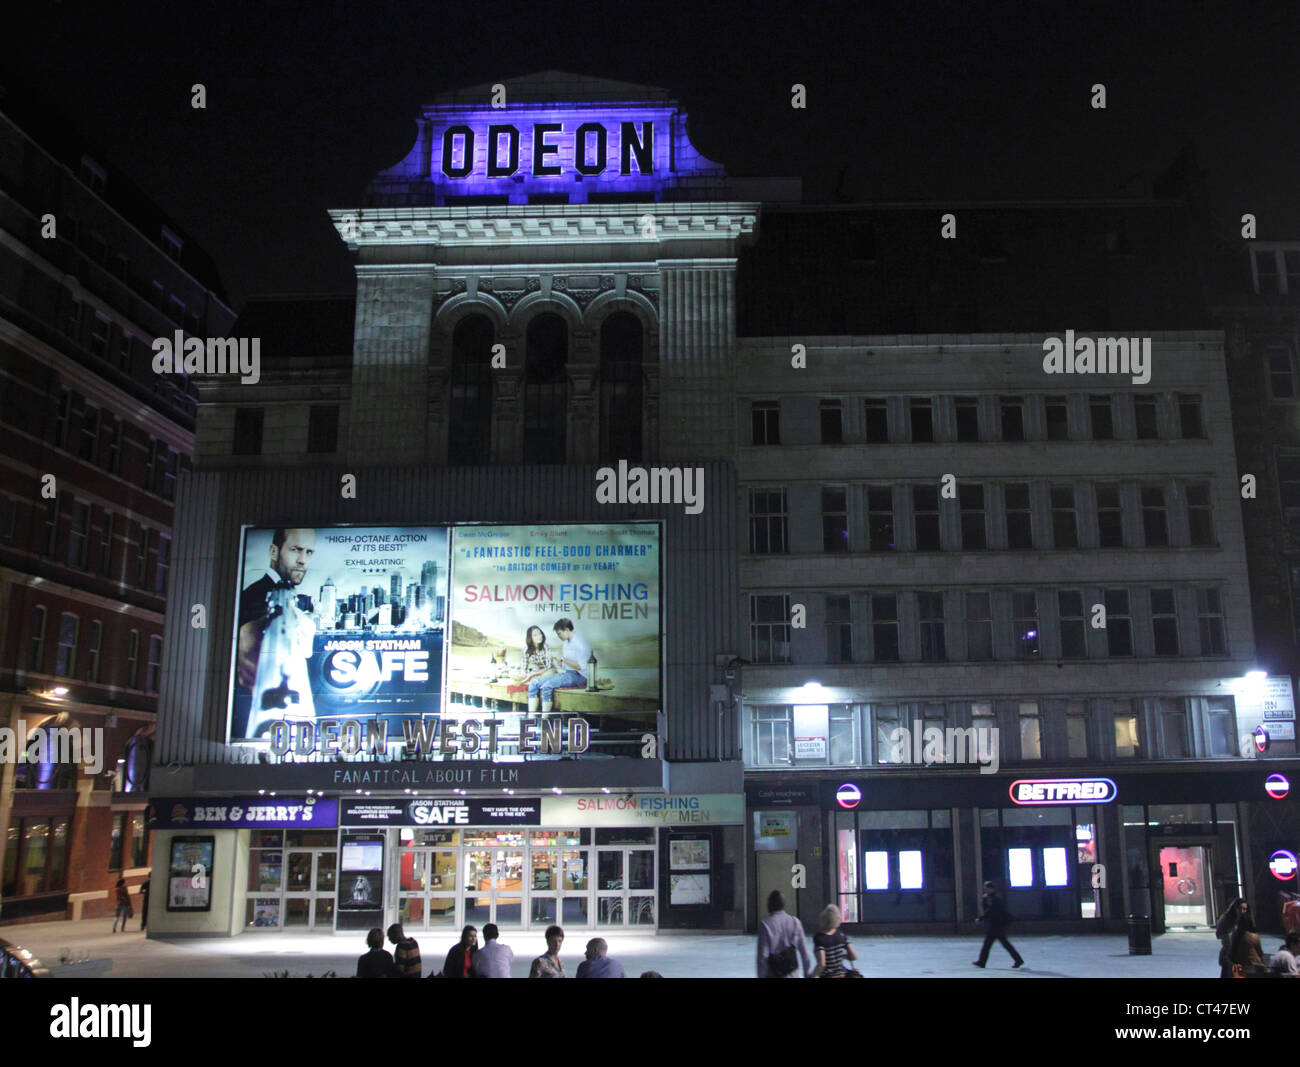 Odeon West End Leicester Square London at night - Stock Image